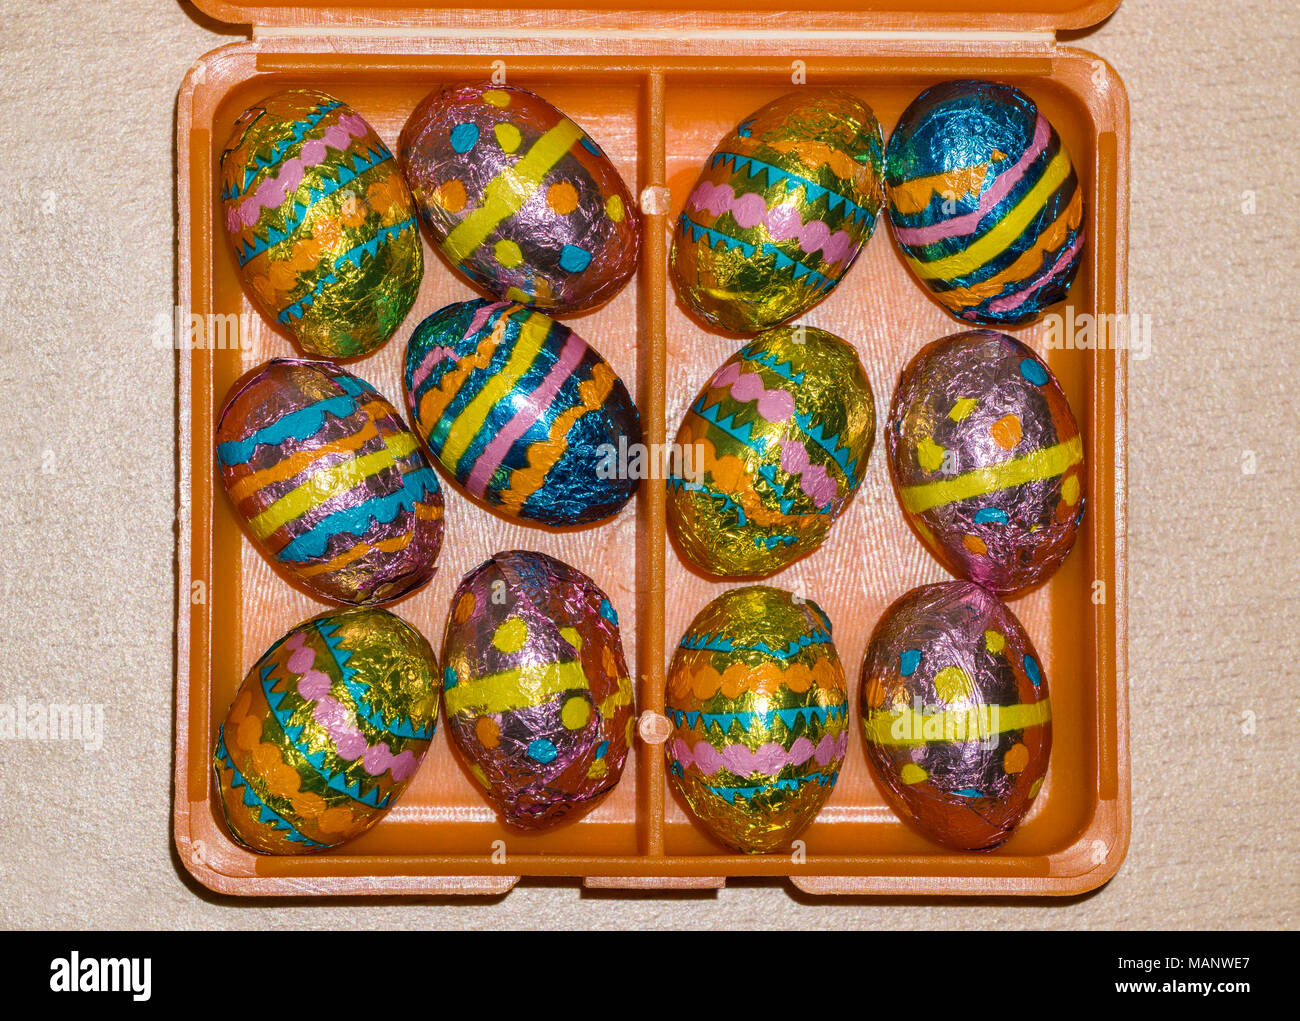 foil wrapped mini chocolate easter eggs in box - Stock Image